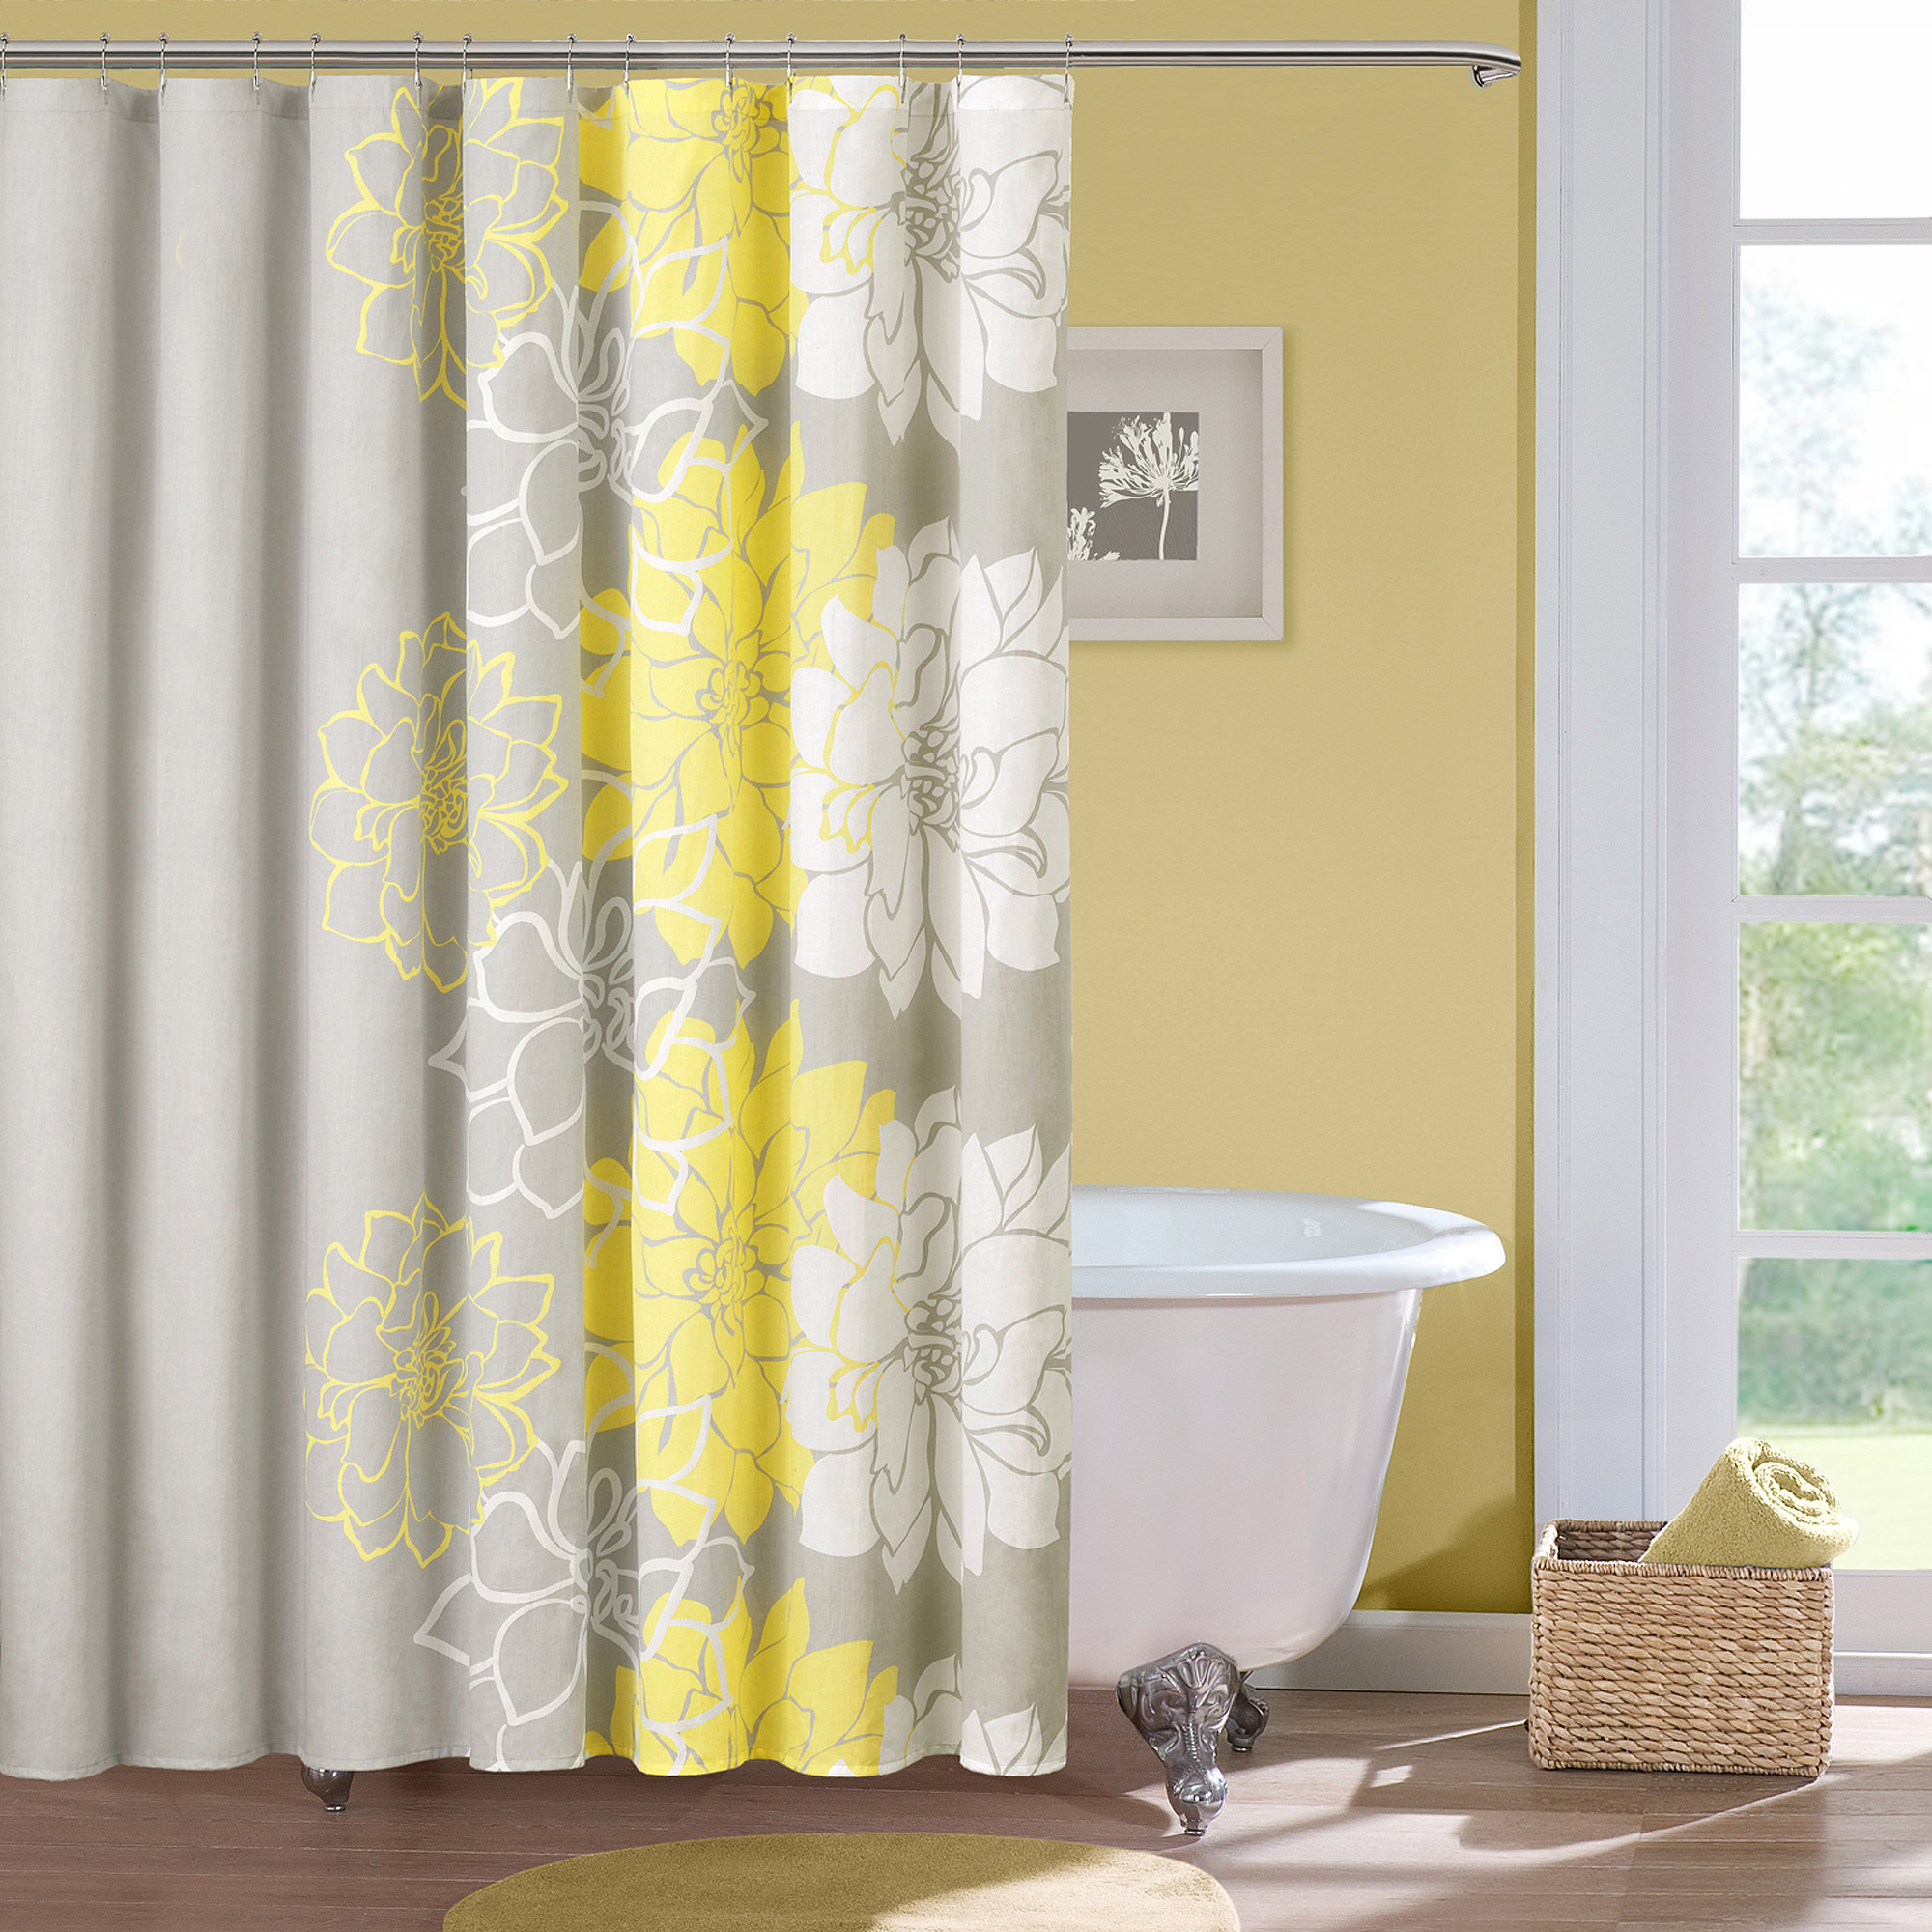 curtains matching shower the are curtain types plastic have designed decor different of htm some what to